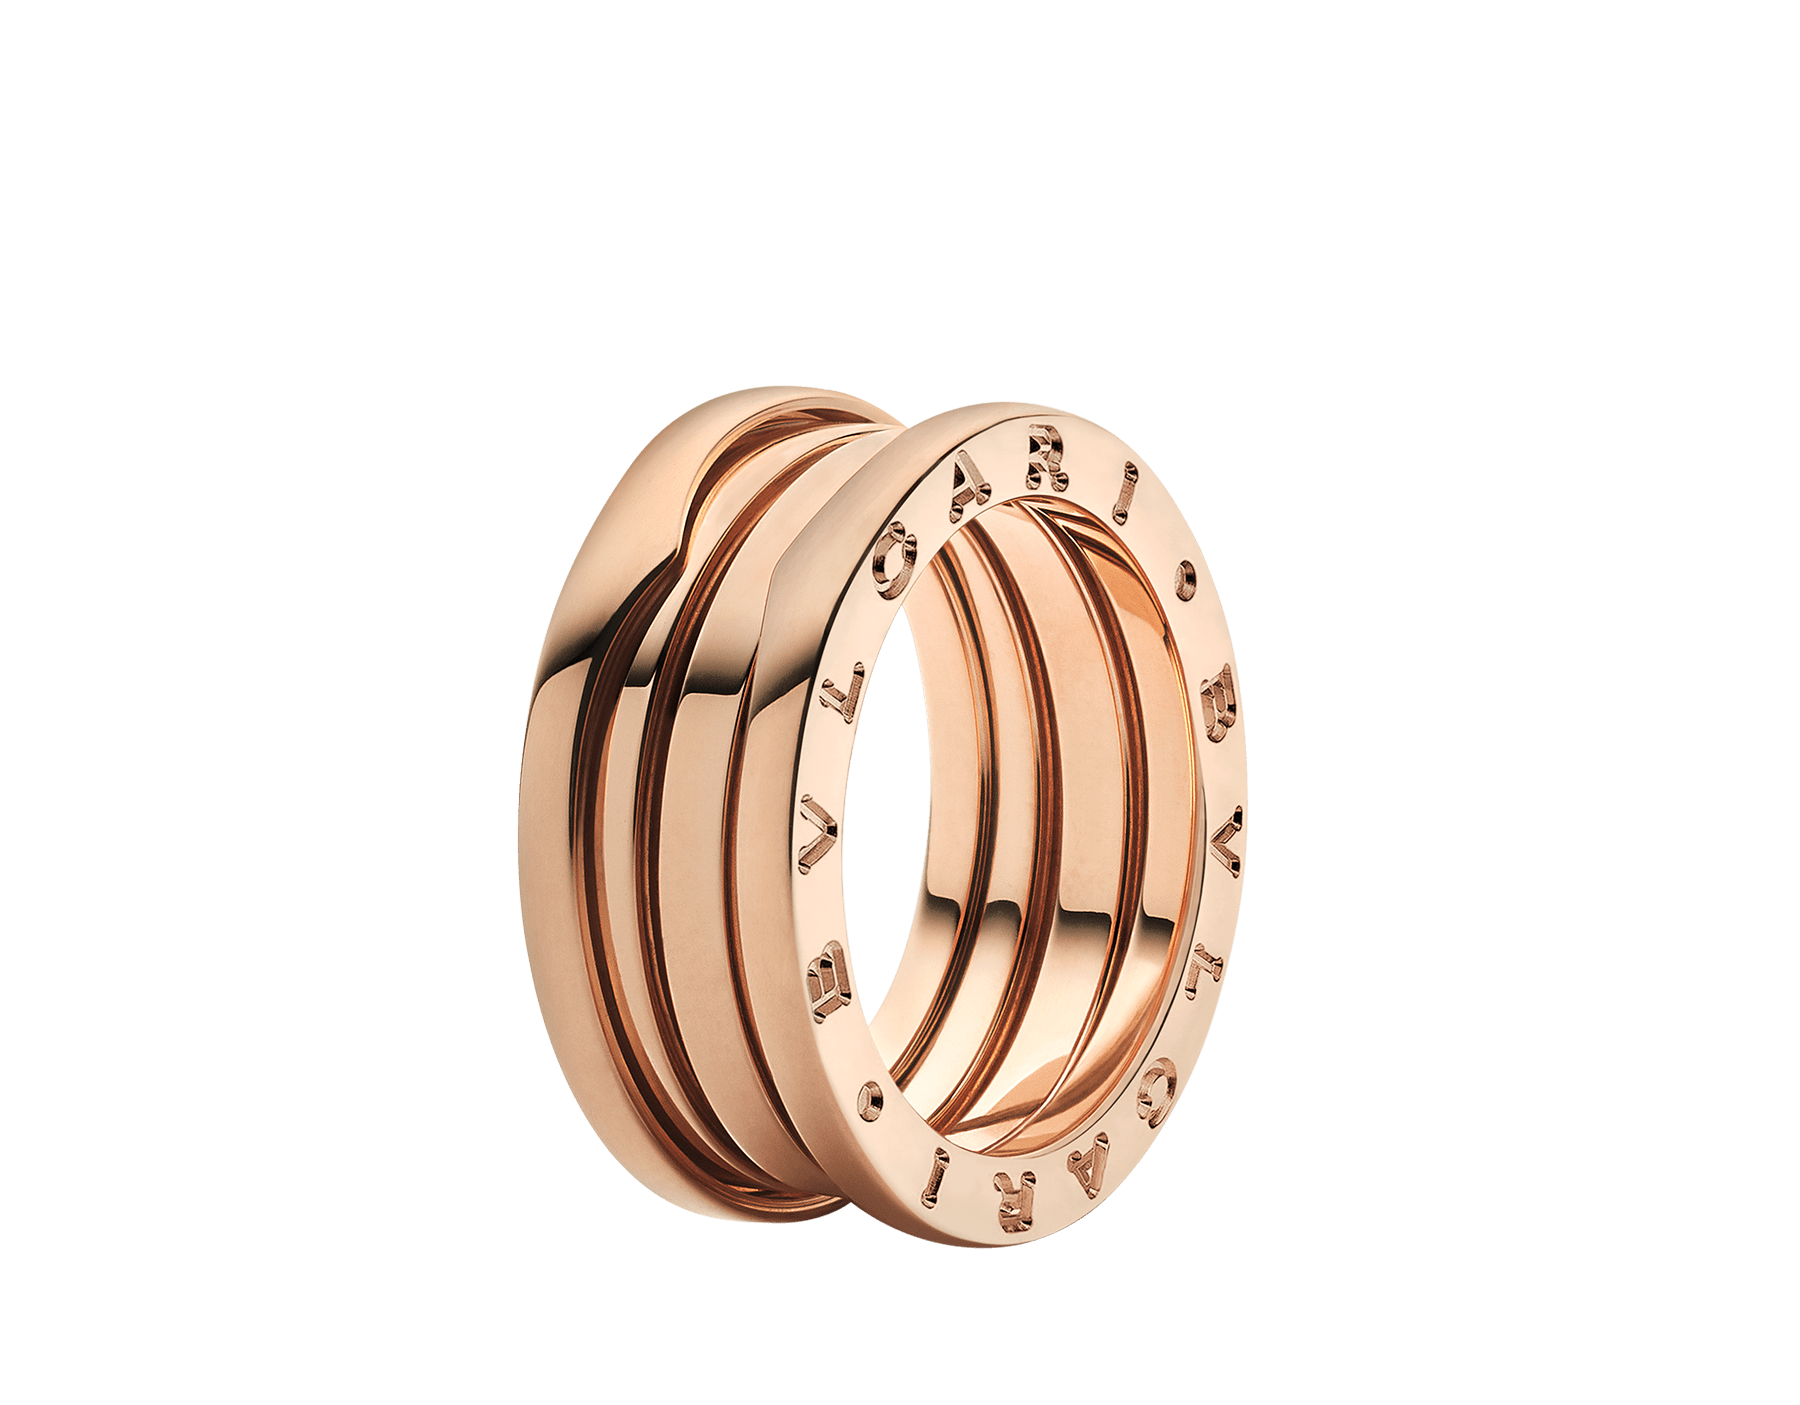 B.zero1 three-band ring in 18 kt rose gold. B-zero1-3-bands-AN852405 image 1